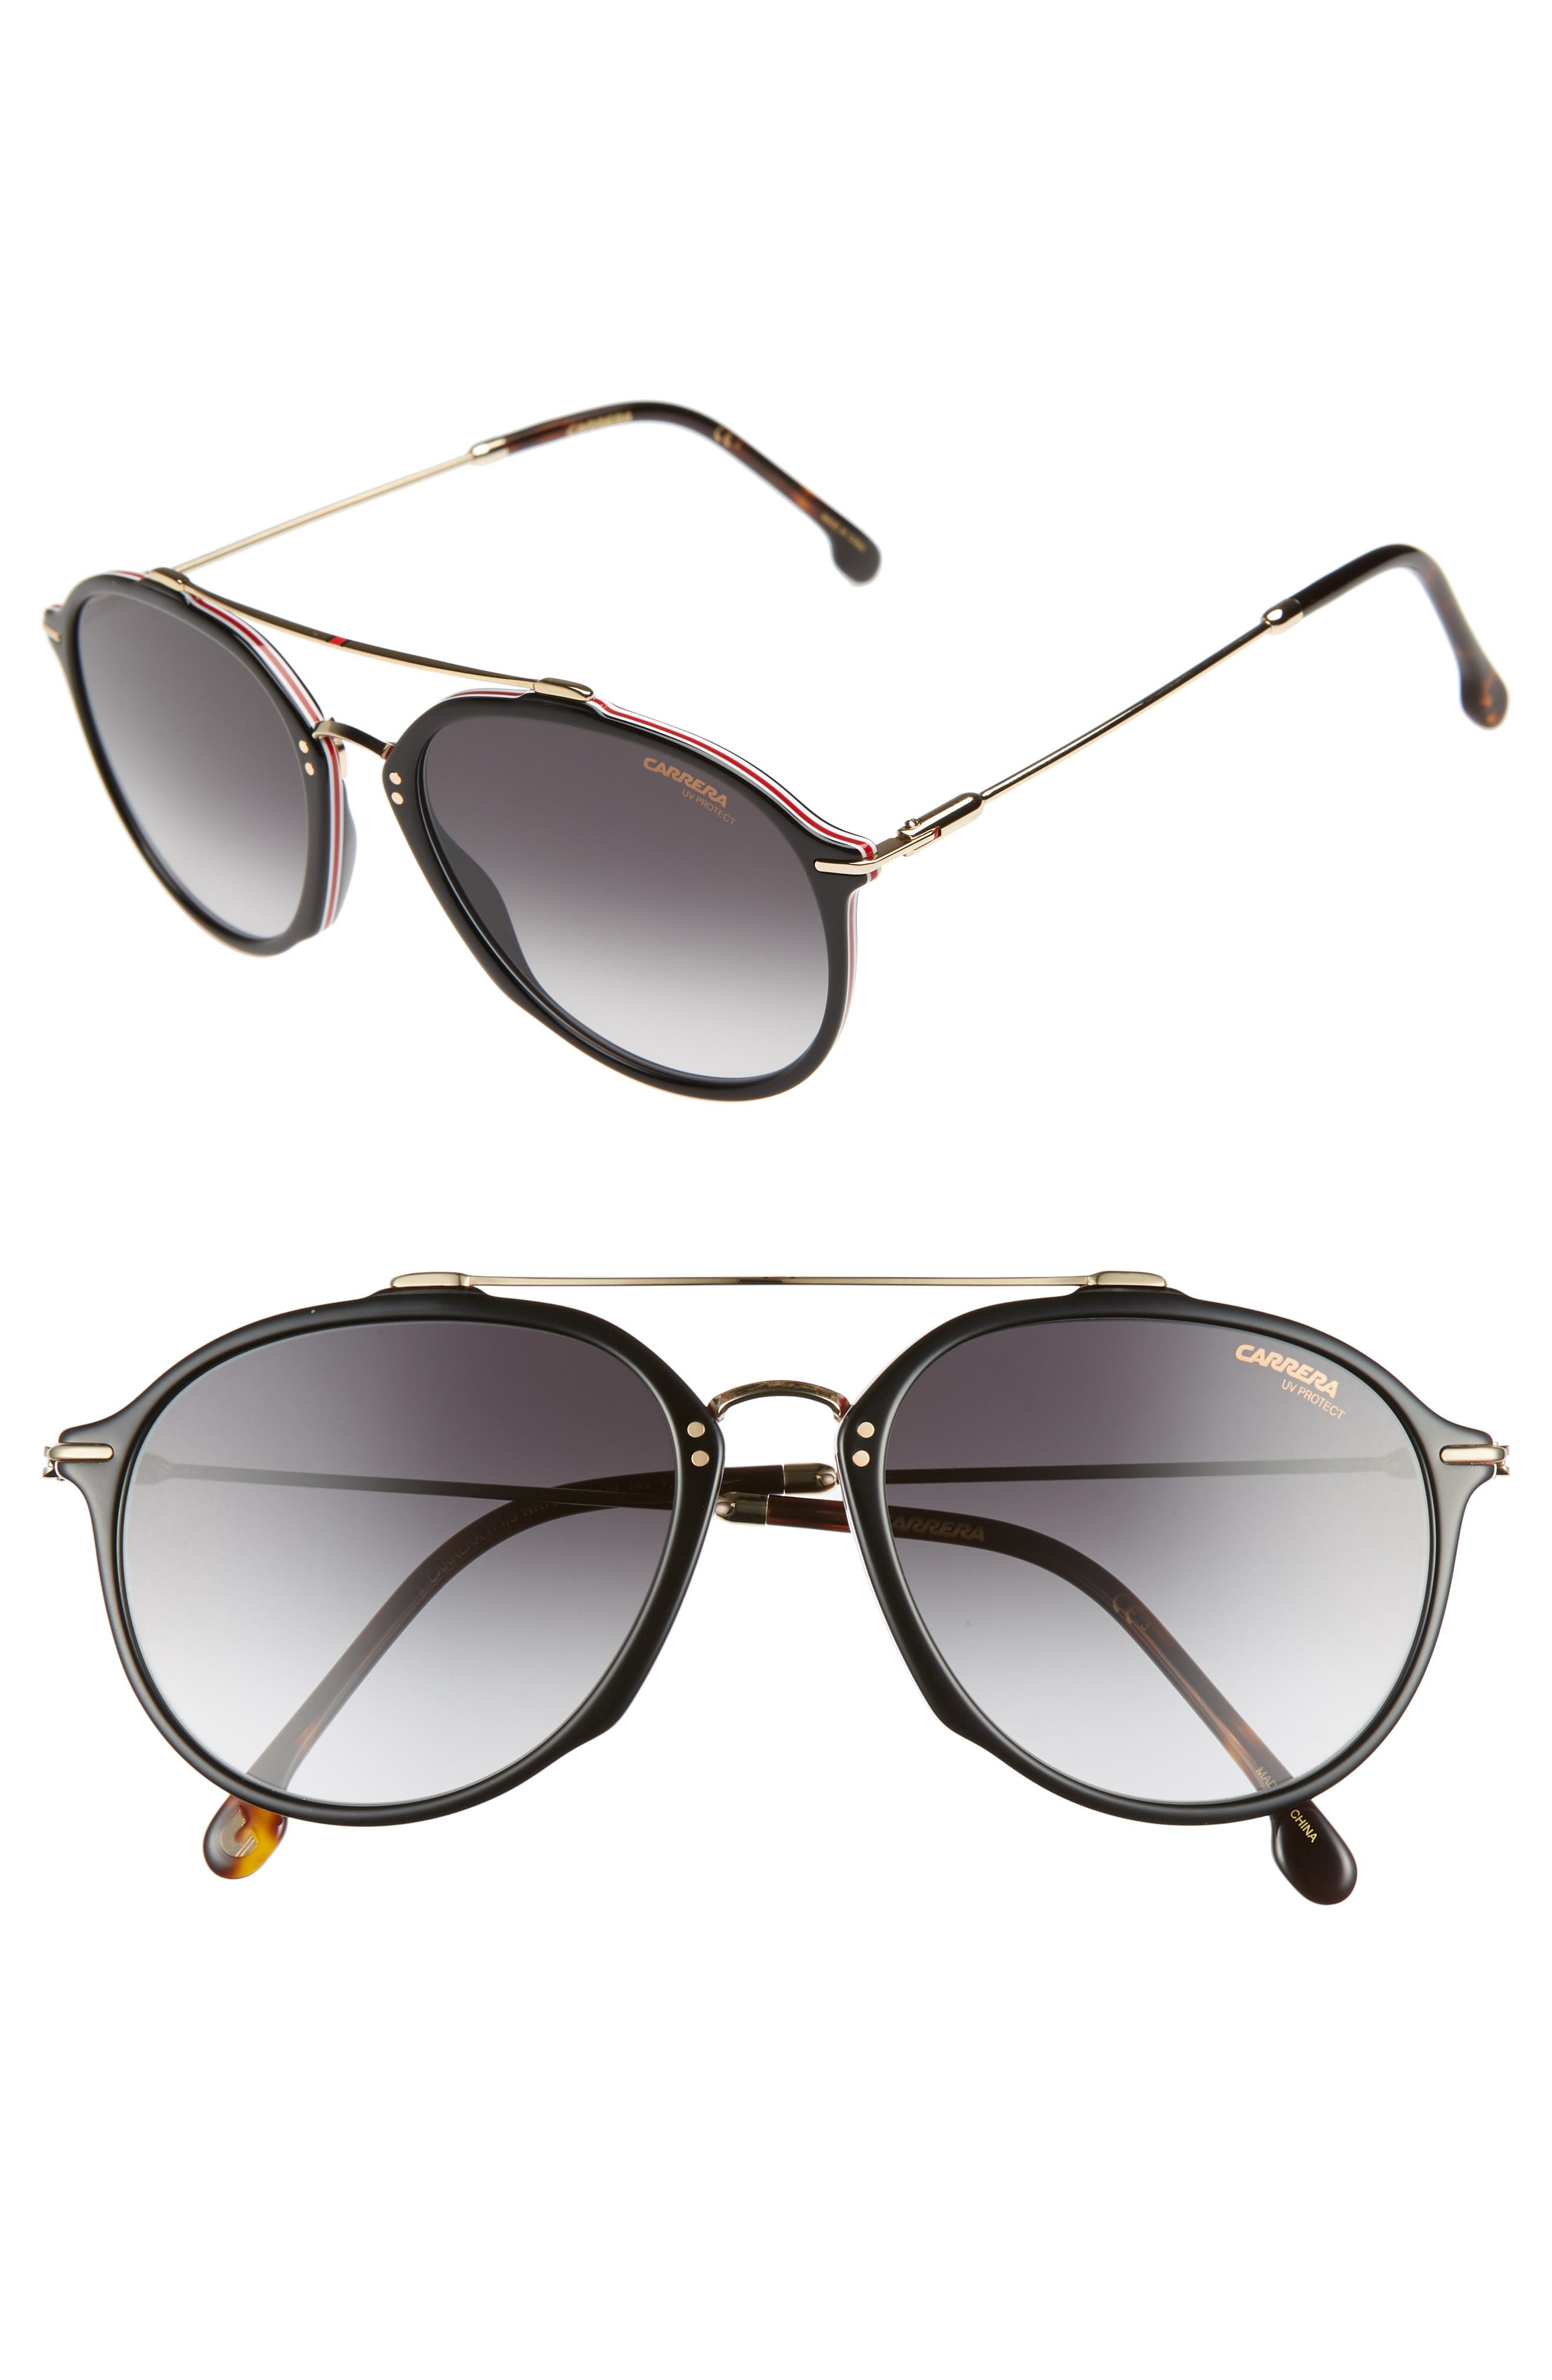 Carrera Eyewear 55Mm Round Sunglasses - Black Havana